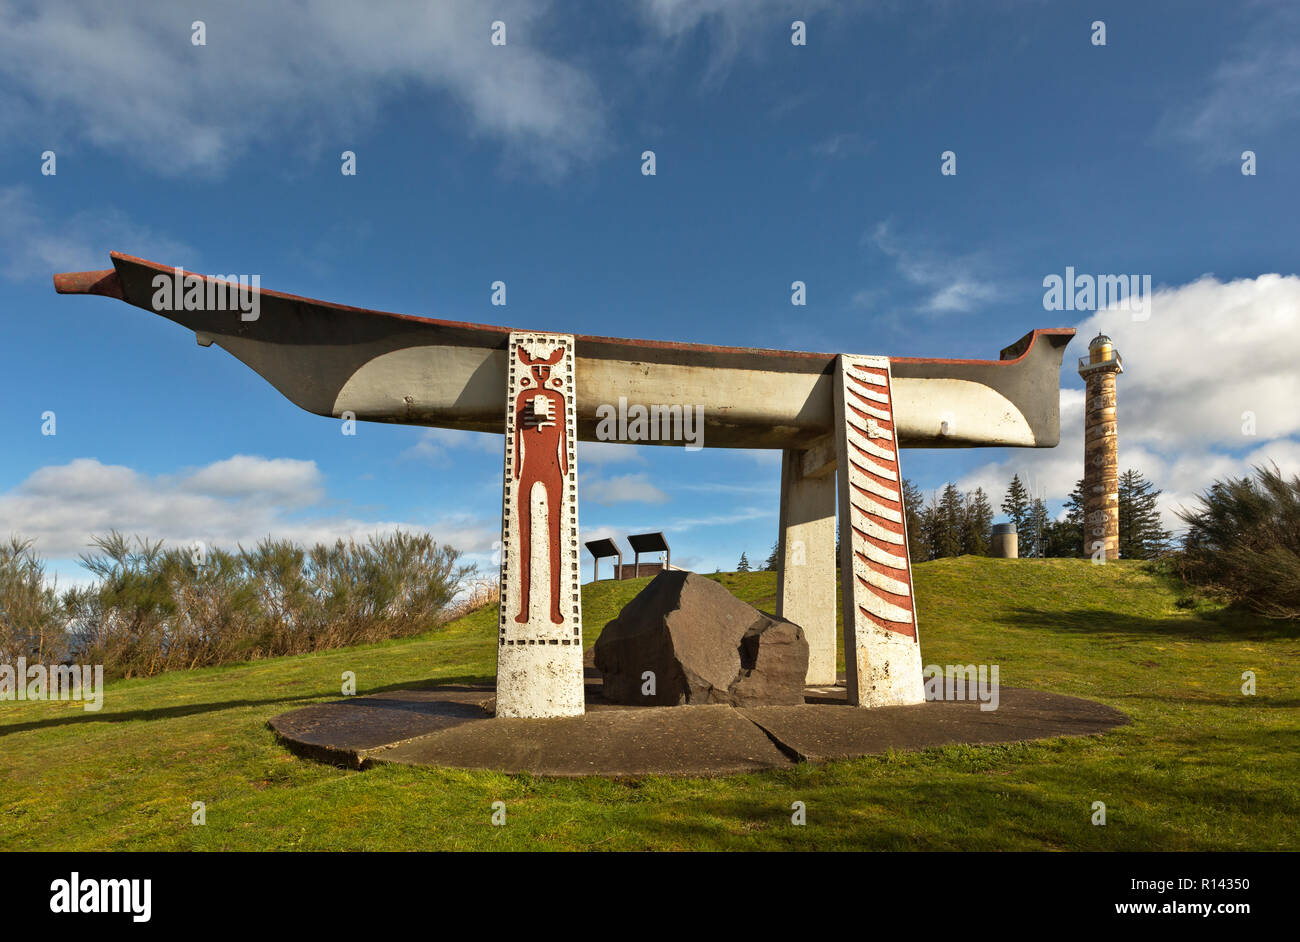 OR02355-00...OREGON - A replica Indian Burial Canoe on a hill near the Astoria Column in the town of Astoria on the Columbia River. - Stock Image